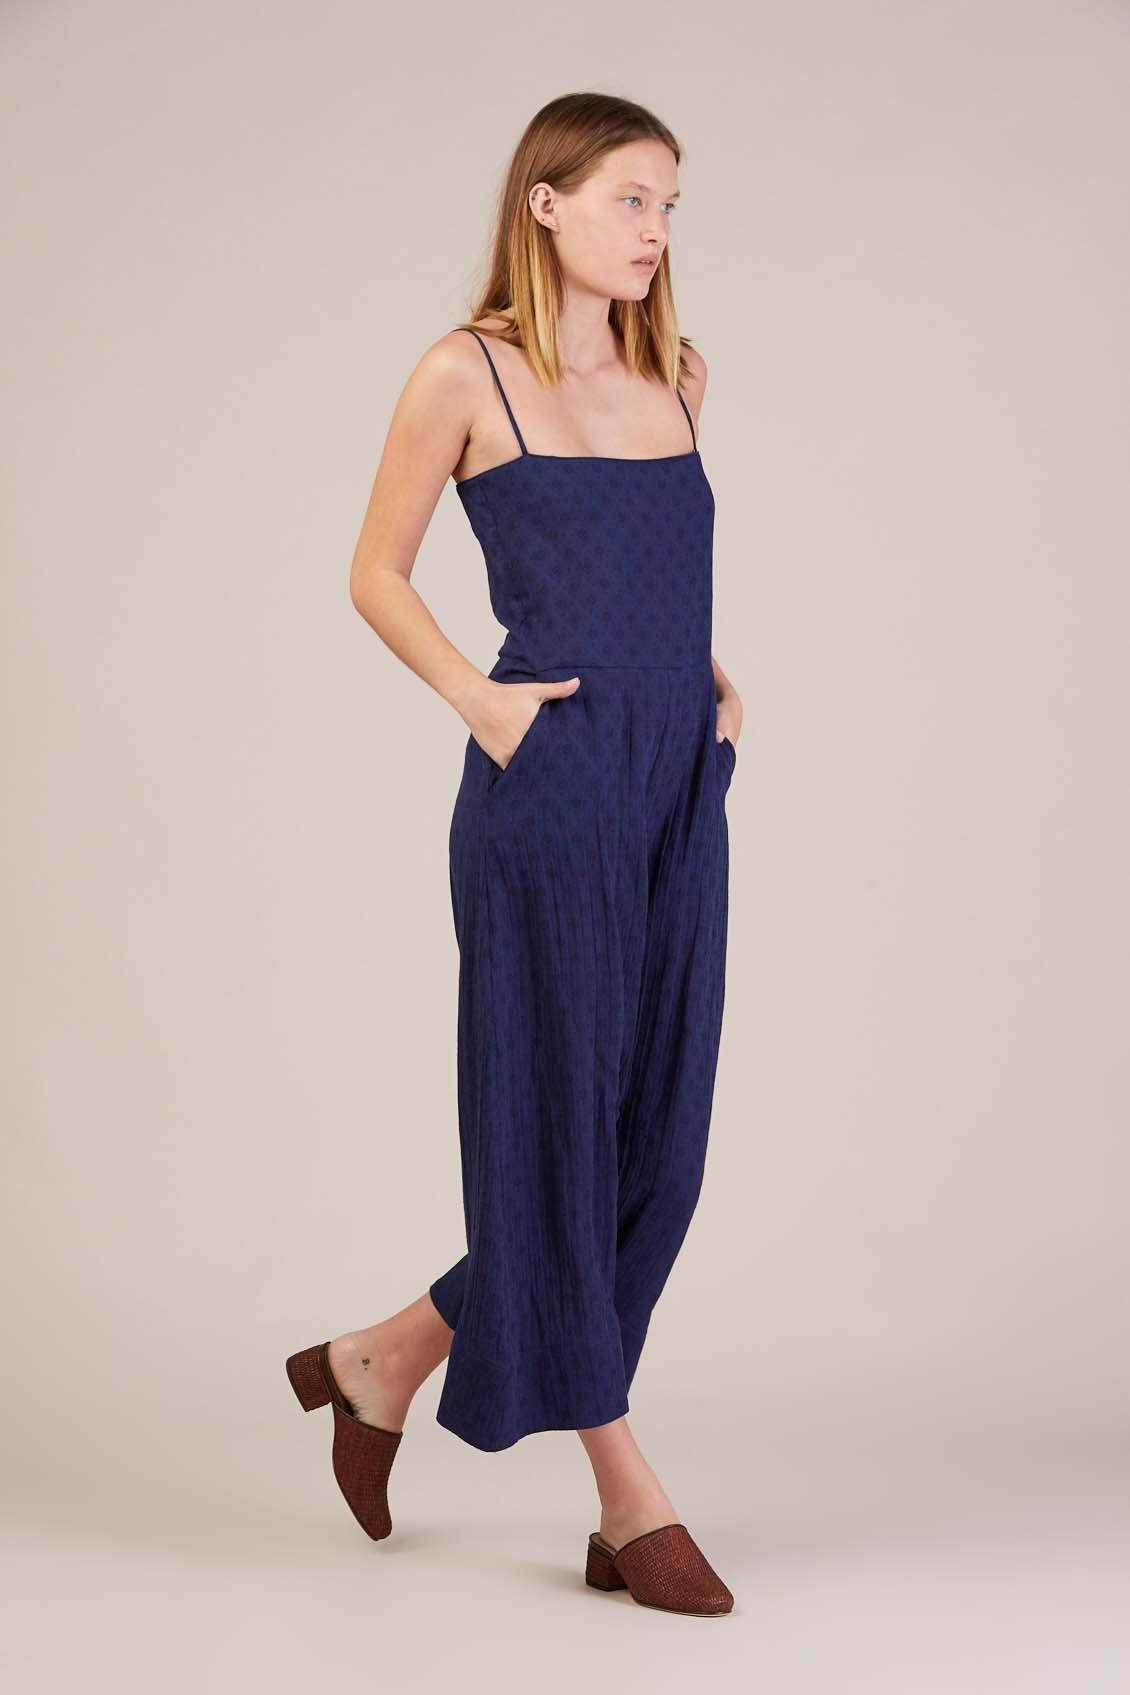 53c71a612797 Lyst - Caron Callahan Mali Jumpsuit in Blue